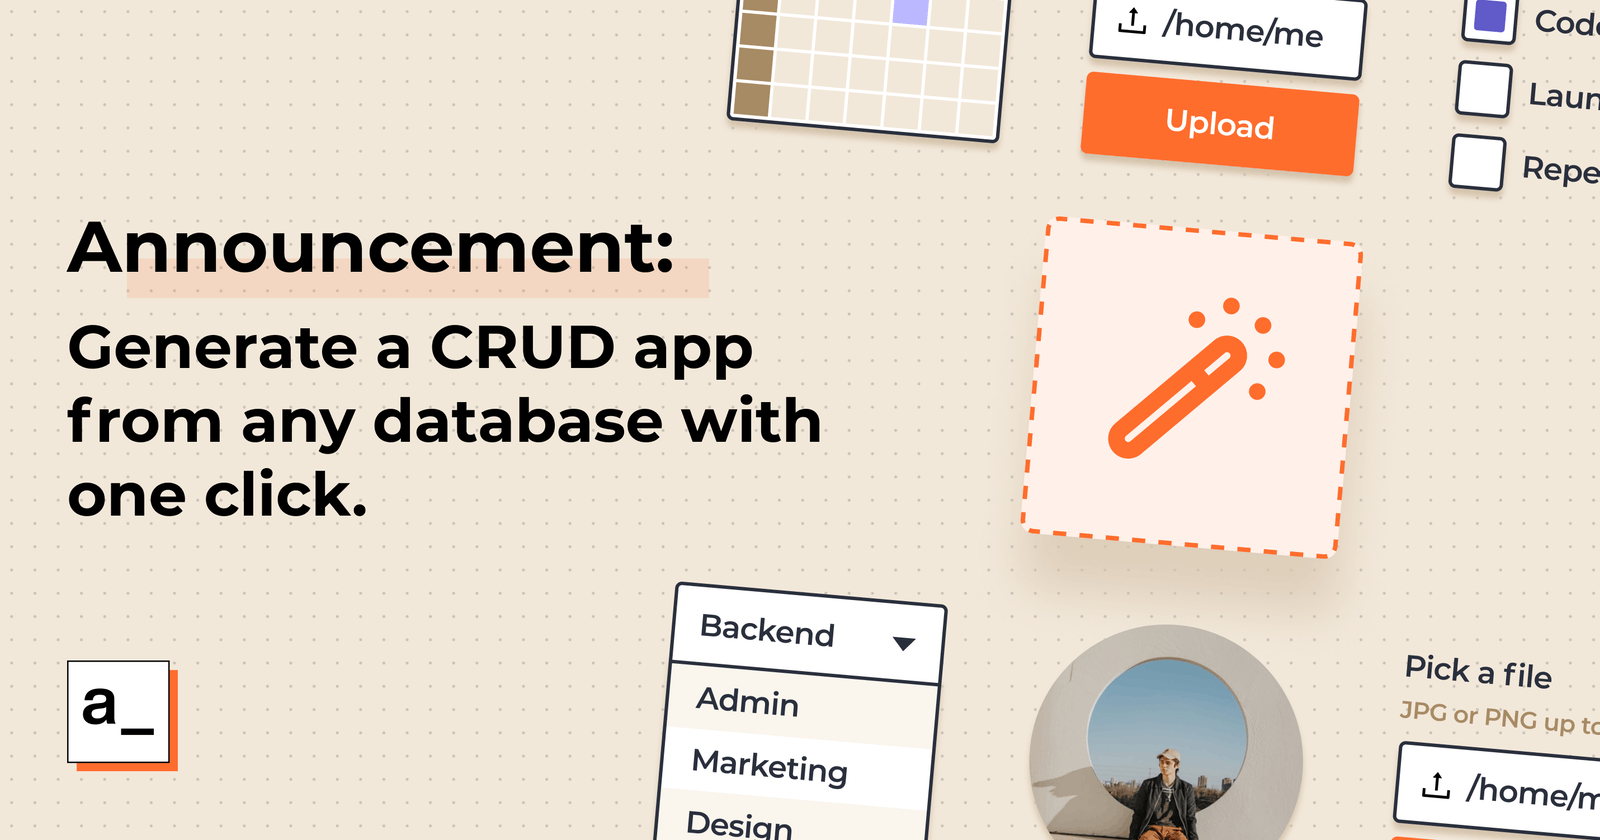 Generate a CRUD app from any database with one click!